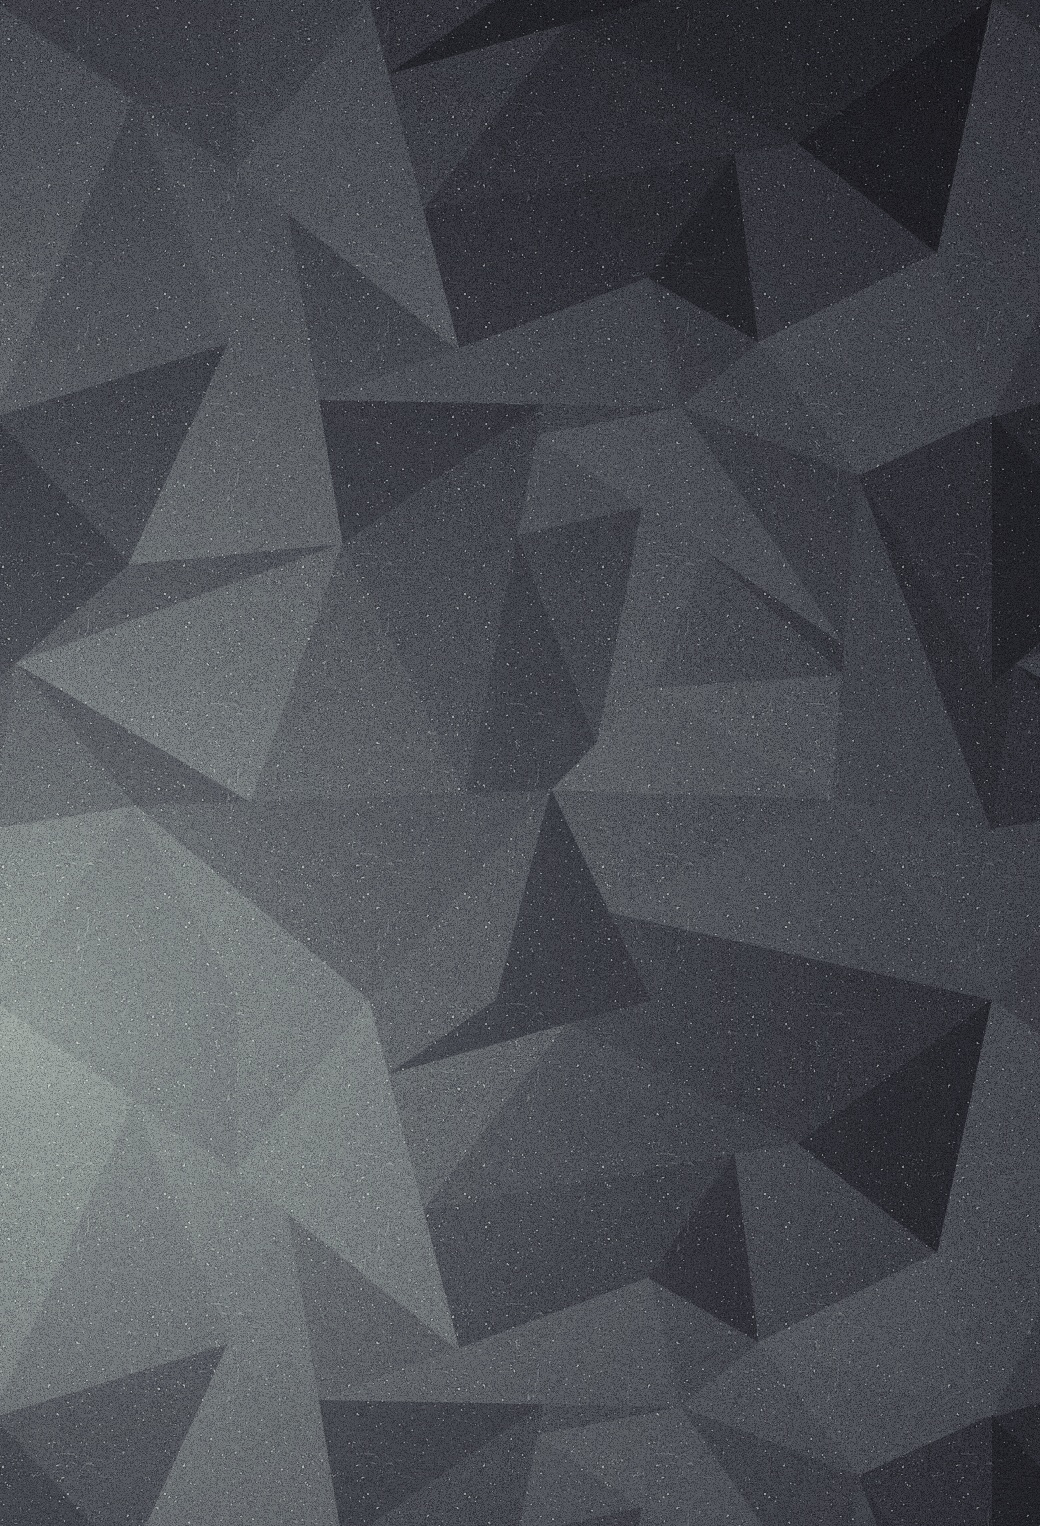 Grey Polygone Wallpaper for iPhone X, 8, 7, 6